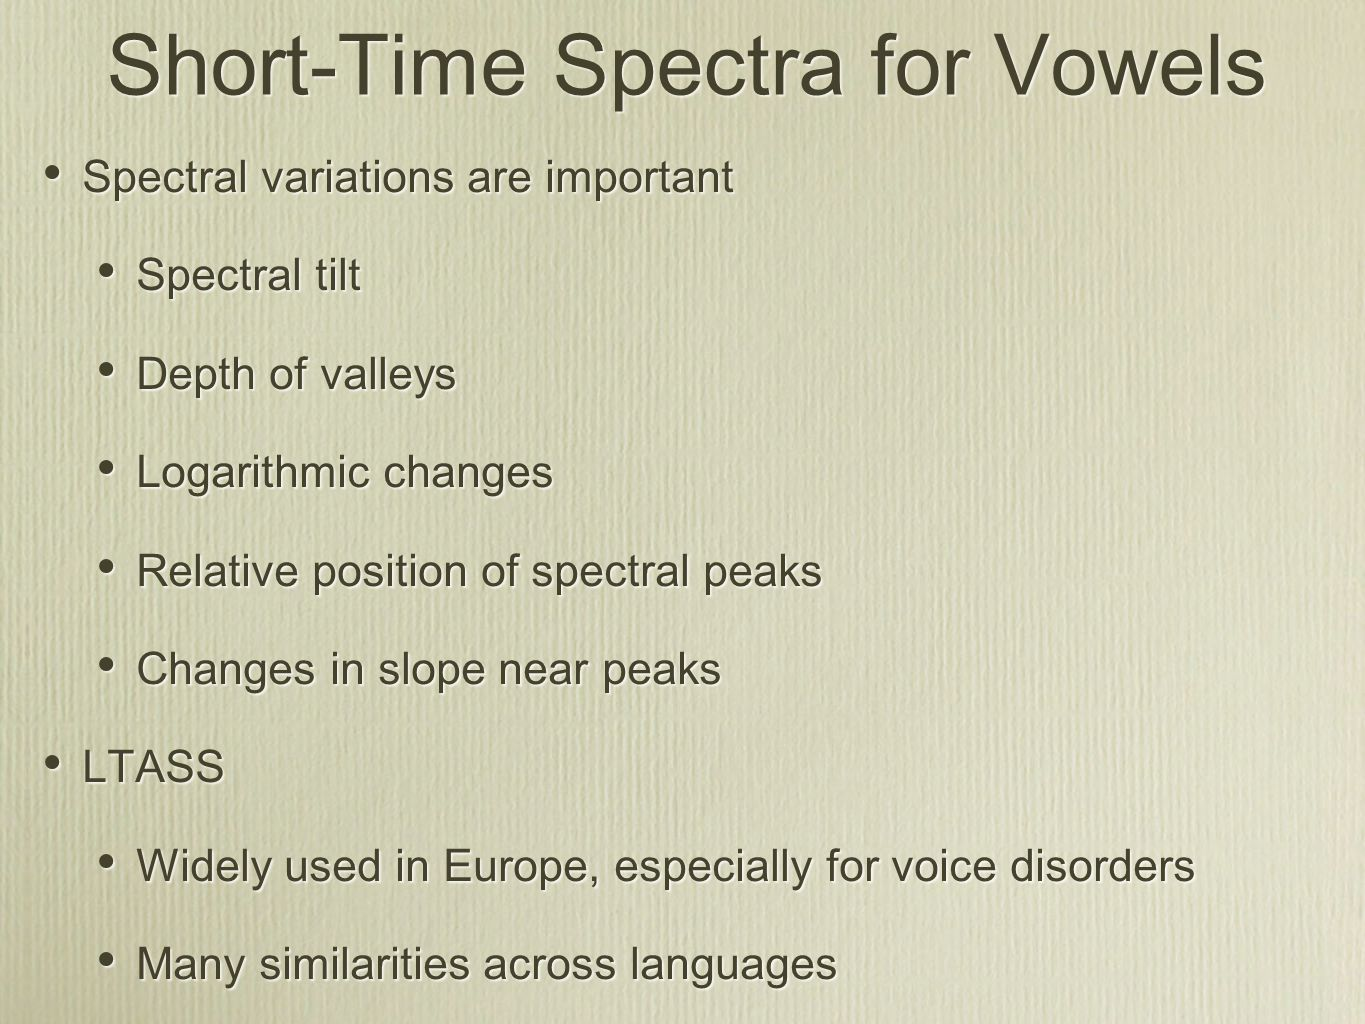 Short-Time Spectra for Vowels